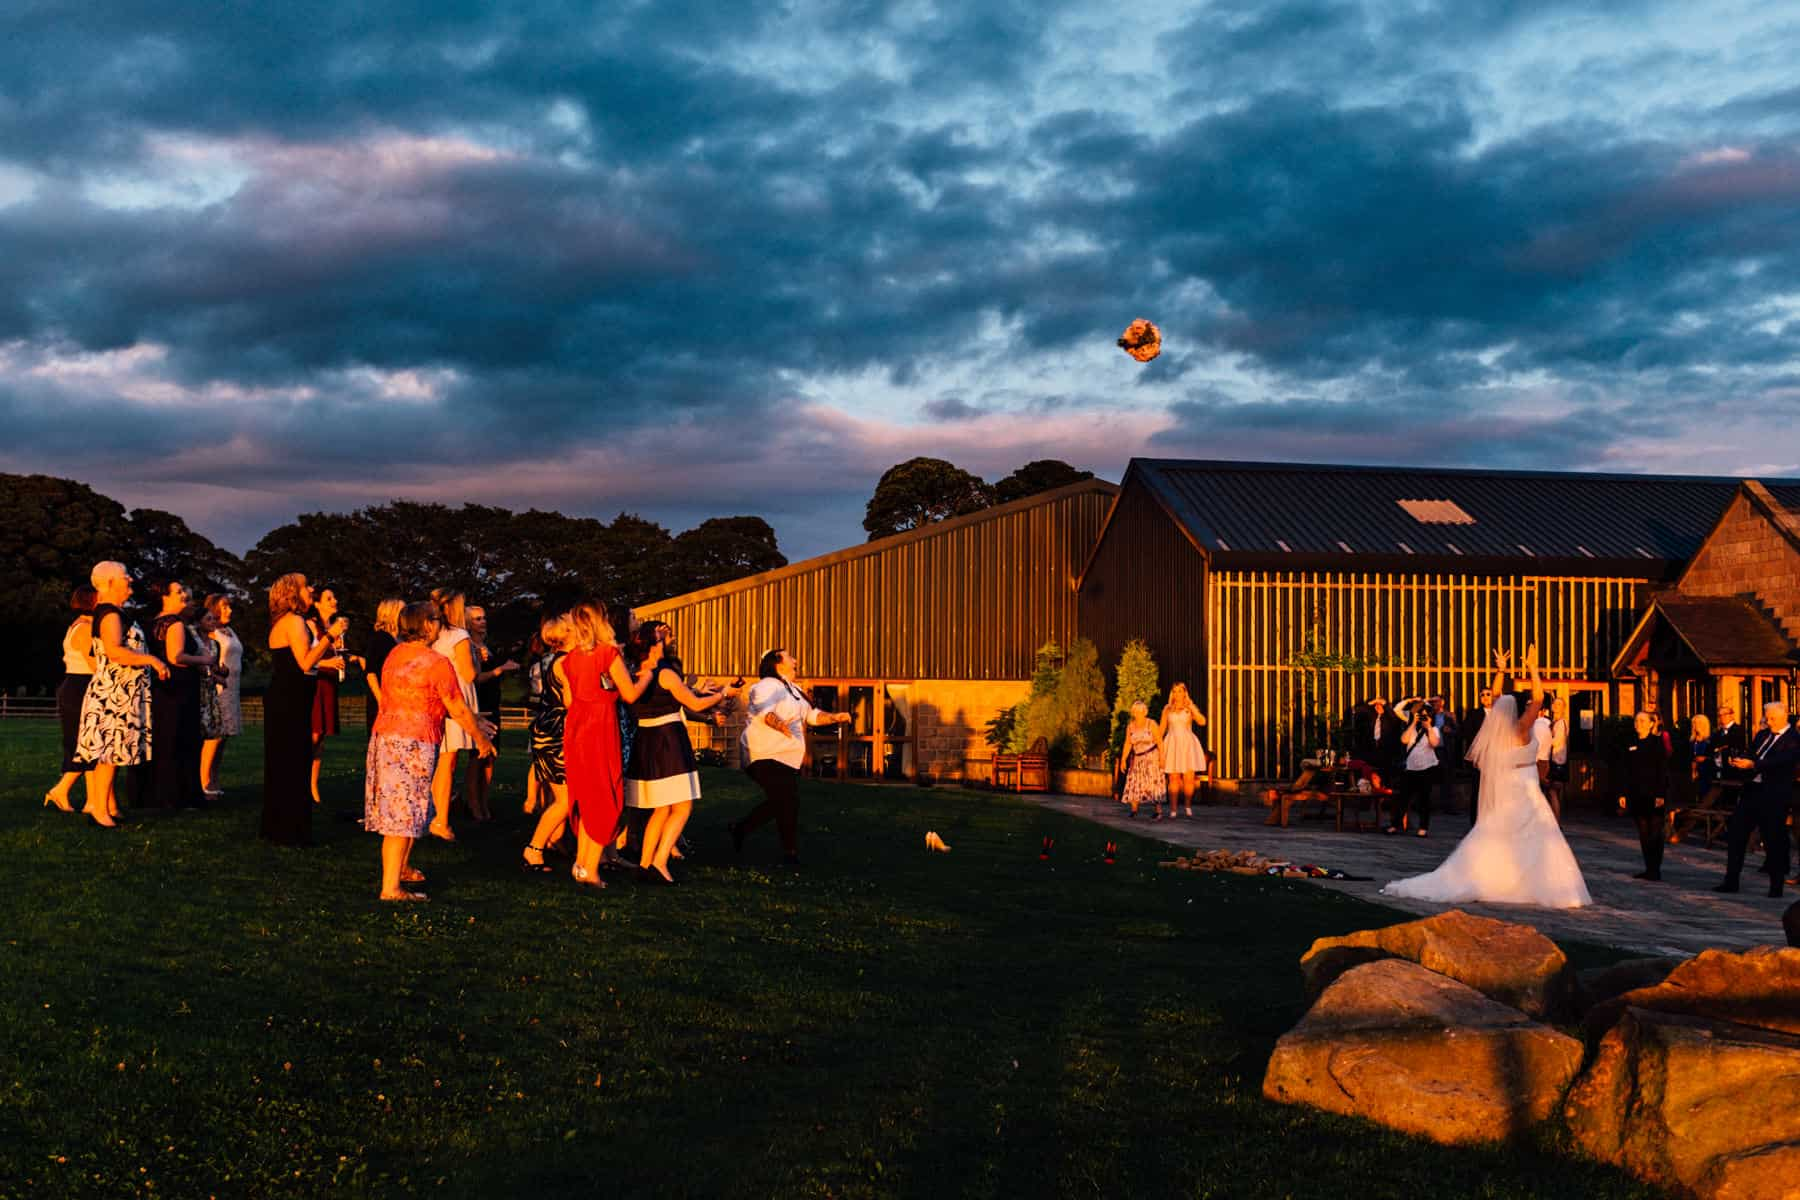 wedding photography bride in sunset bouquet toss (1 of 1)